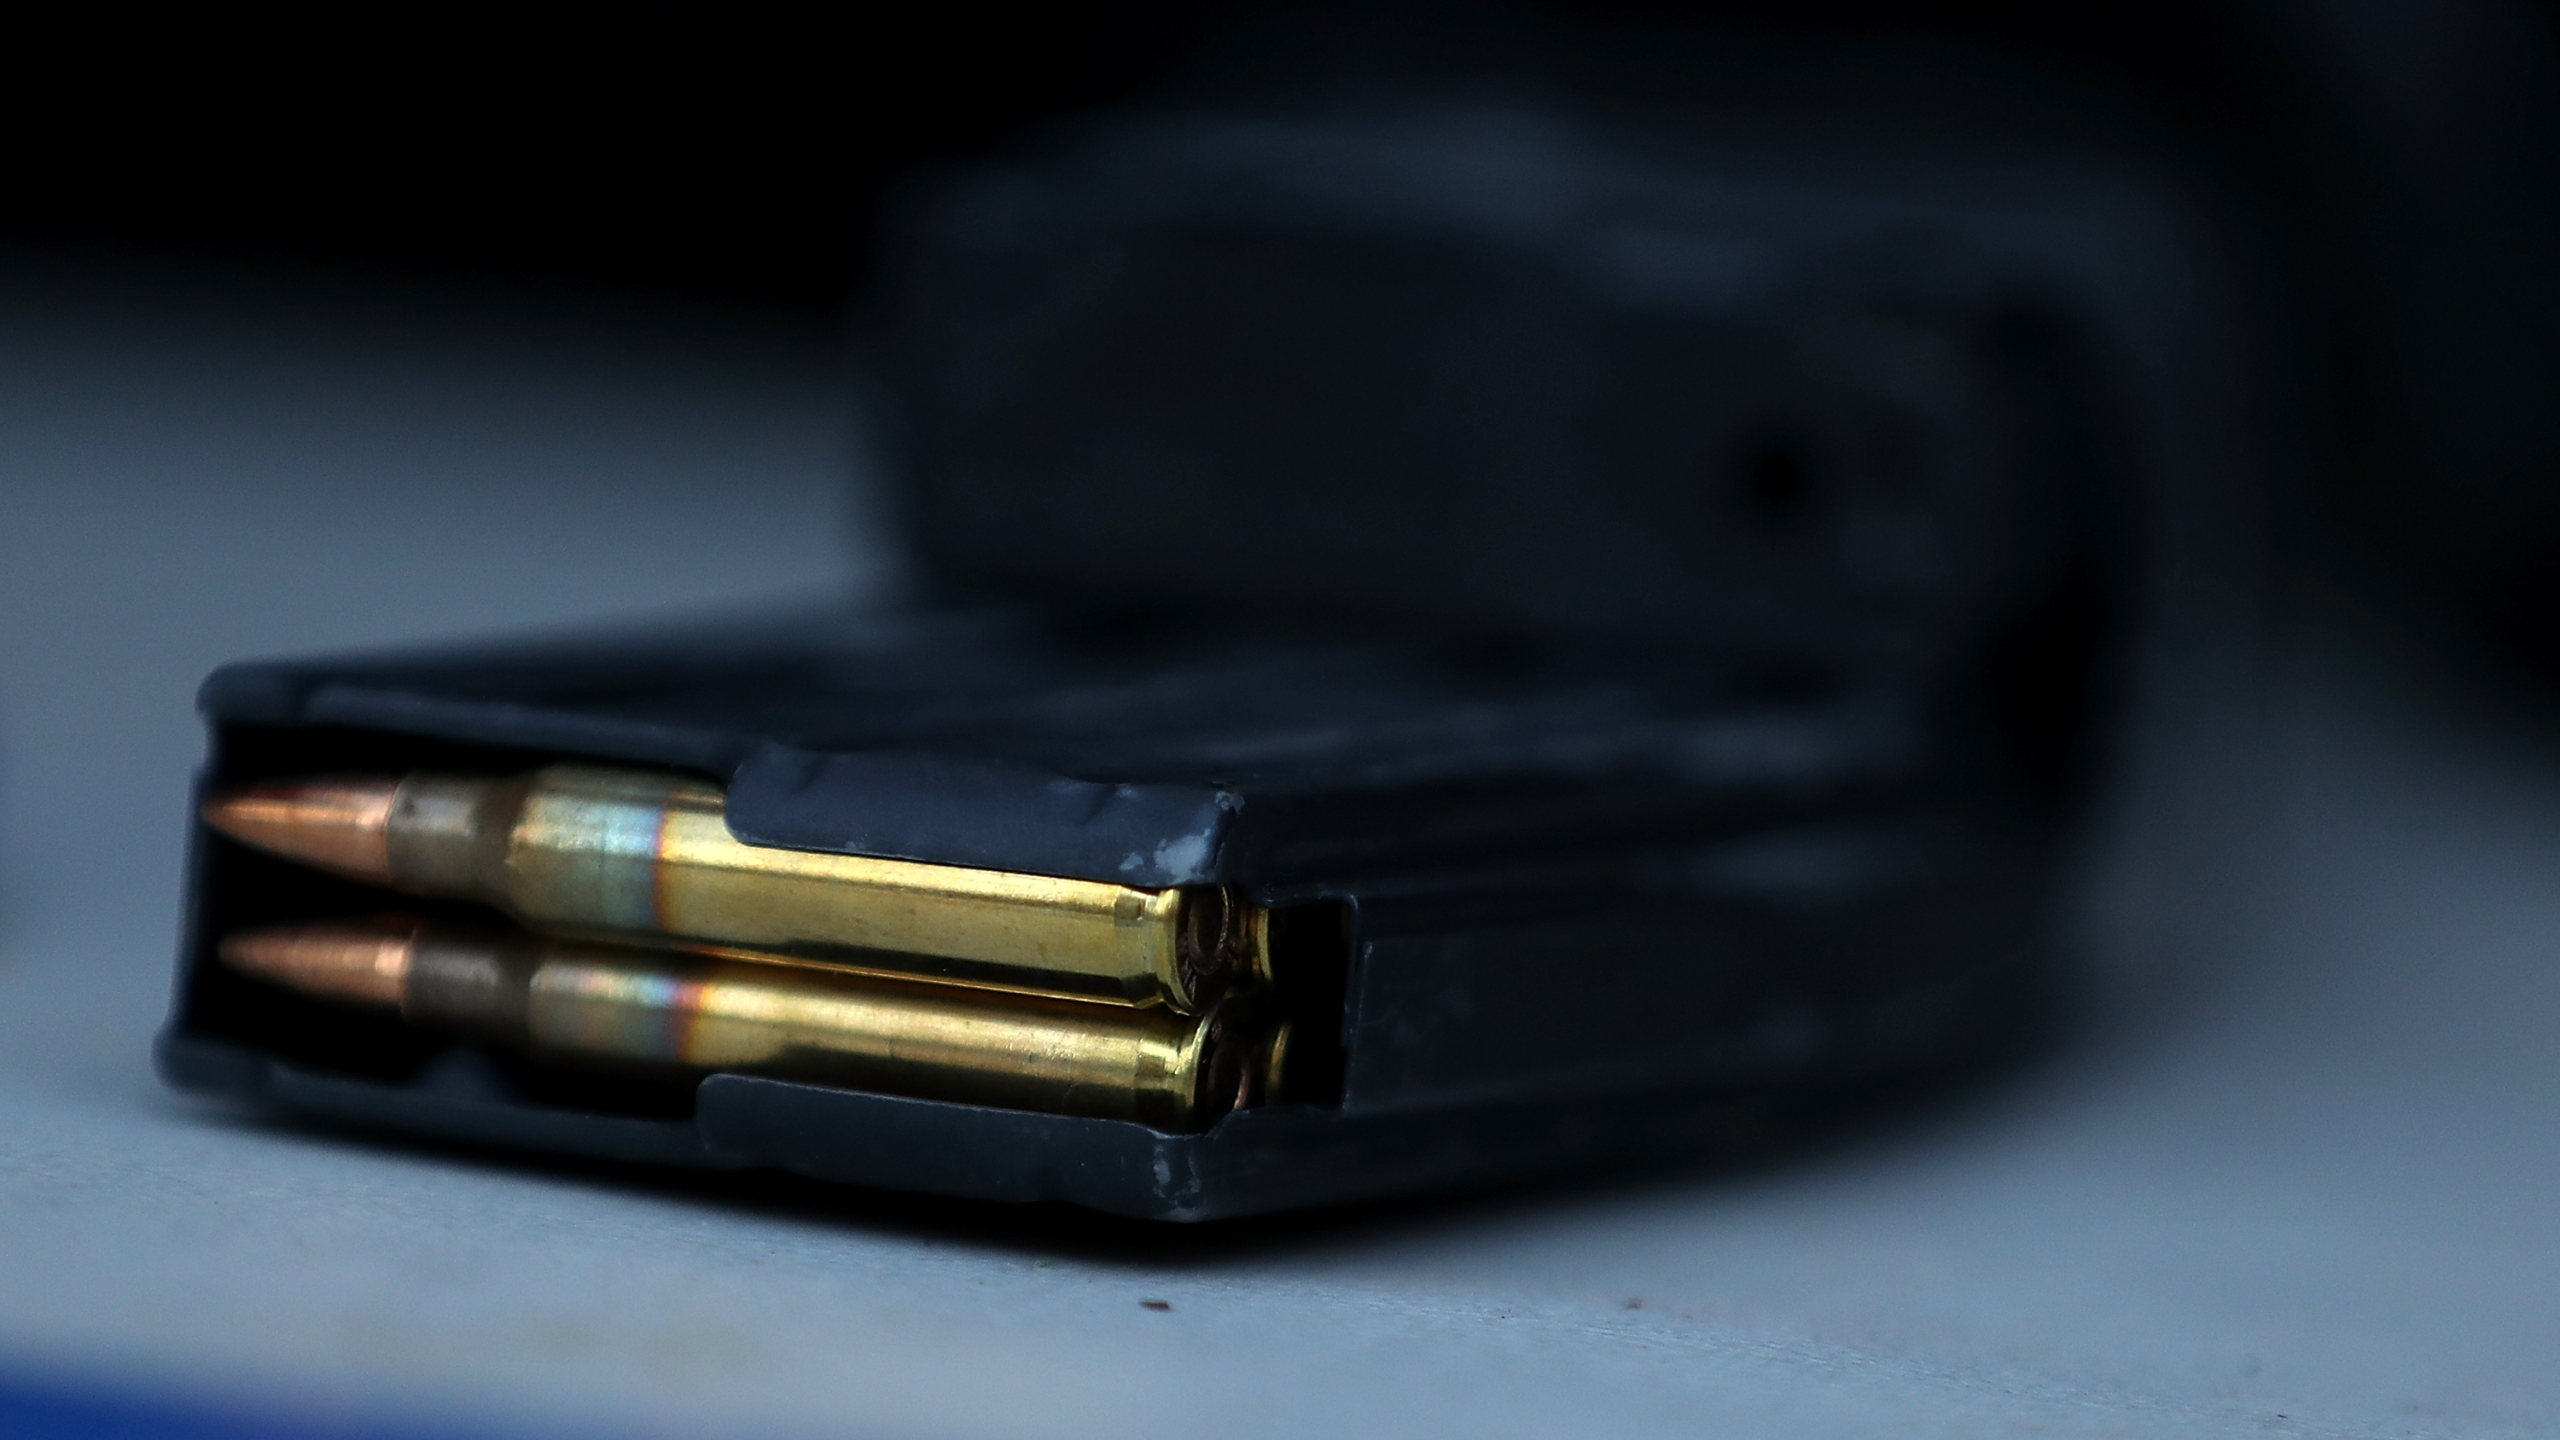 A surrendered assault rifle magazine with bullets sits on a table during a gun buyback event in San Francisco on Dec. 17, 2016. (Credit: Justin Sullivan / Getty Images)